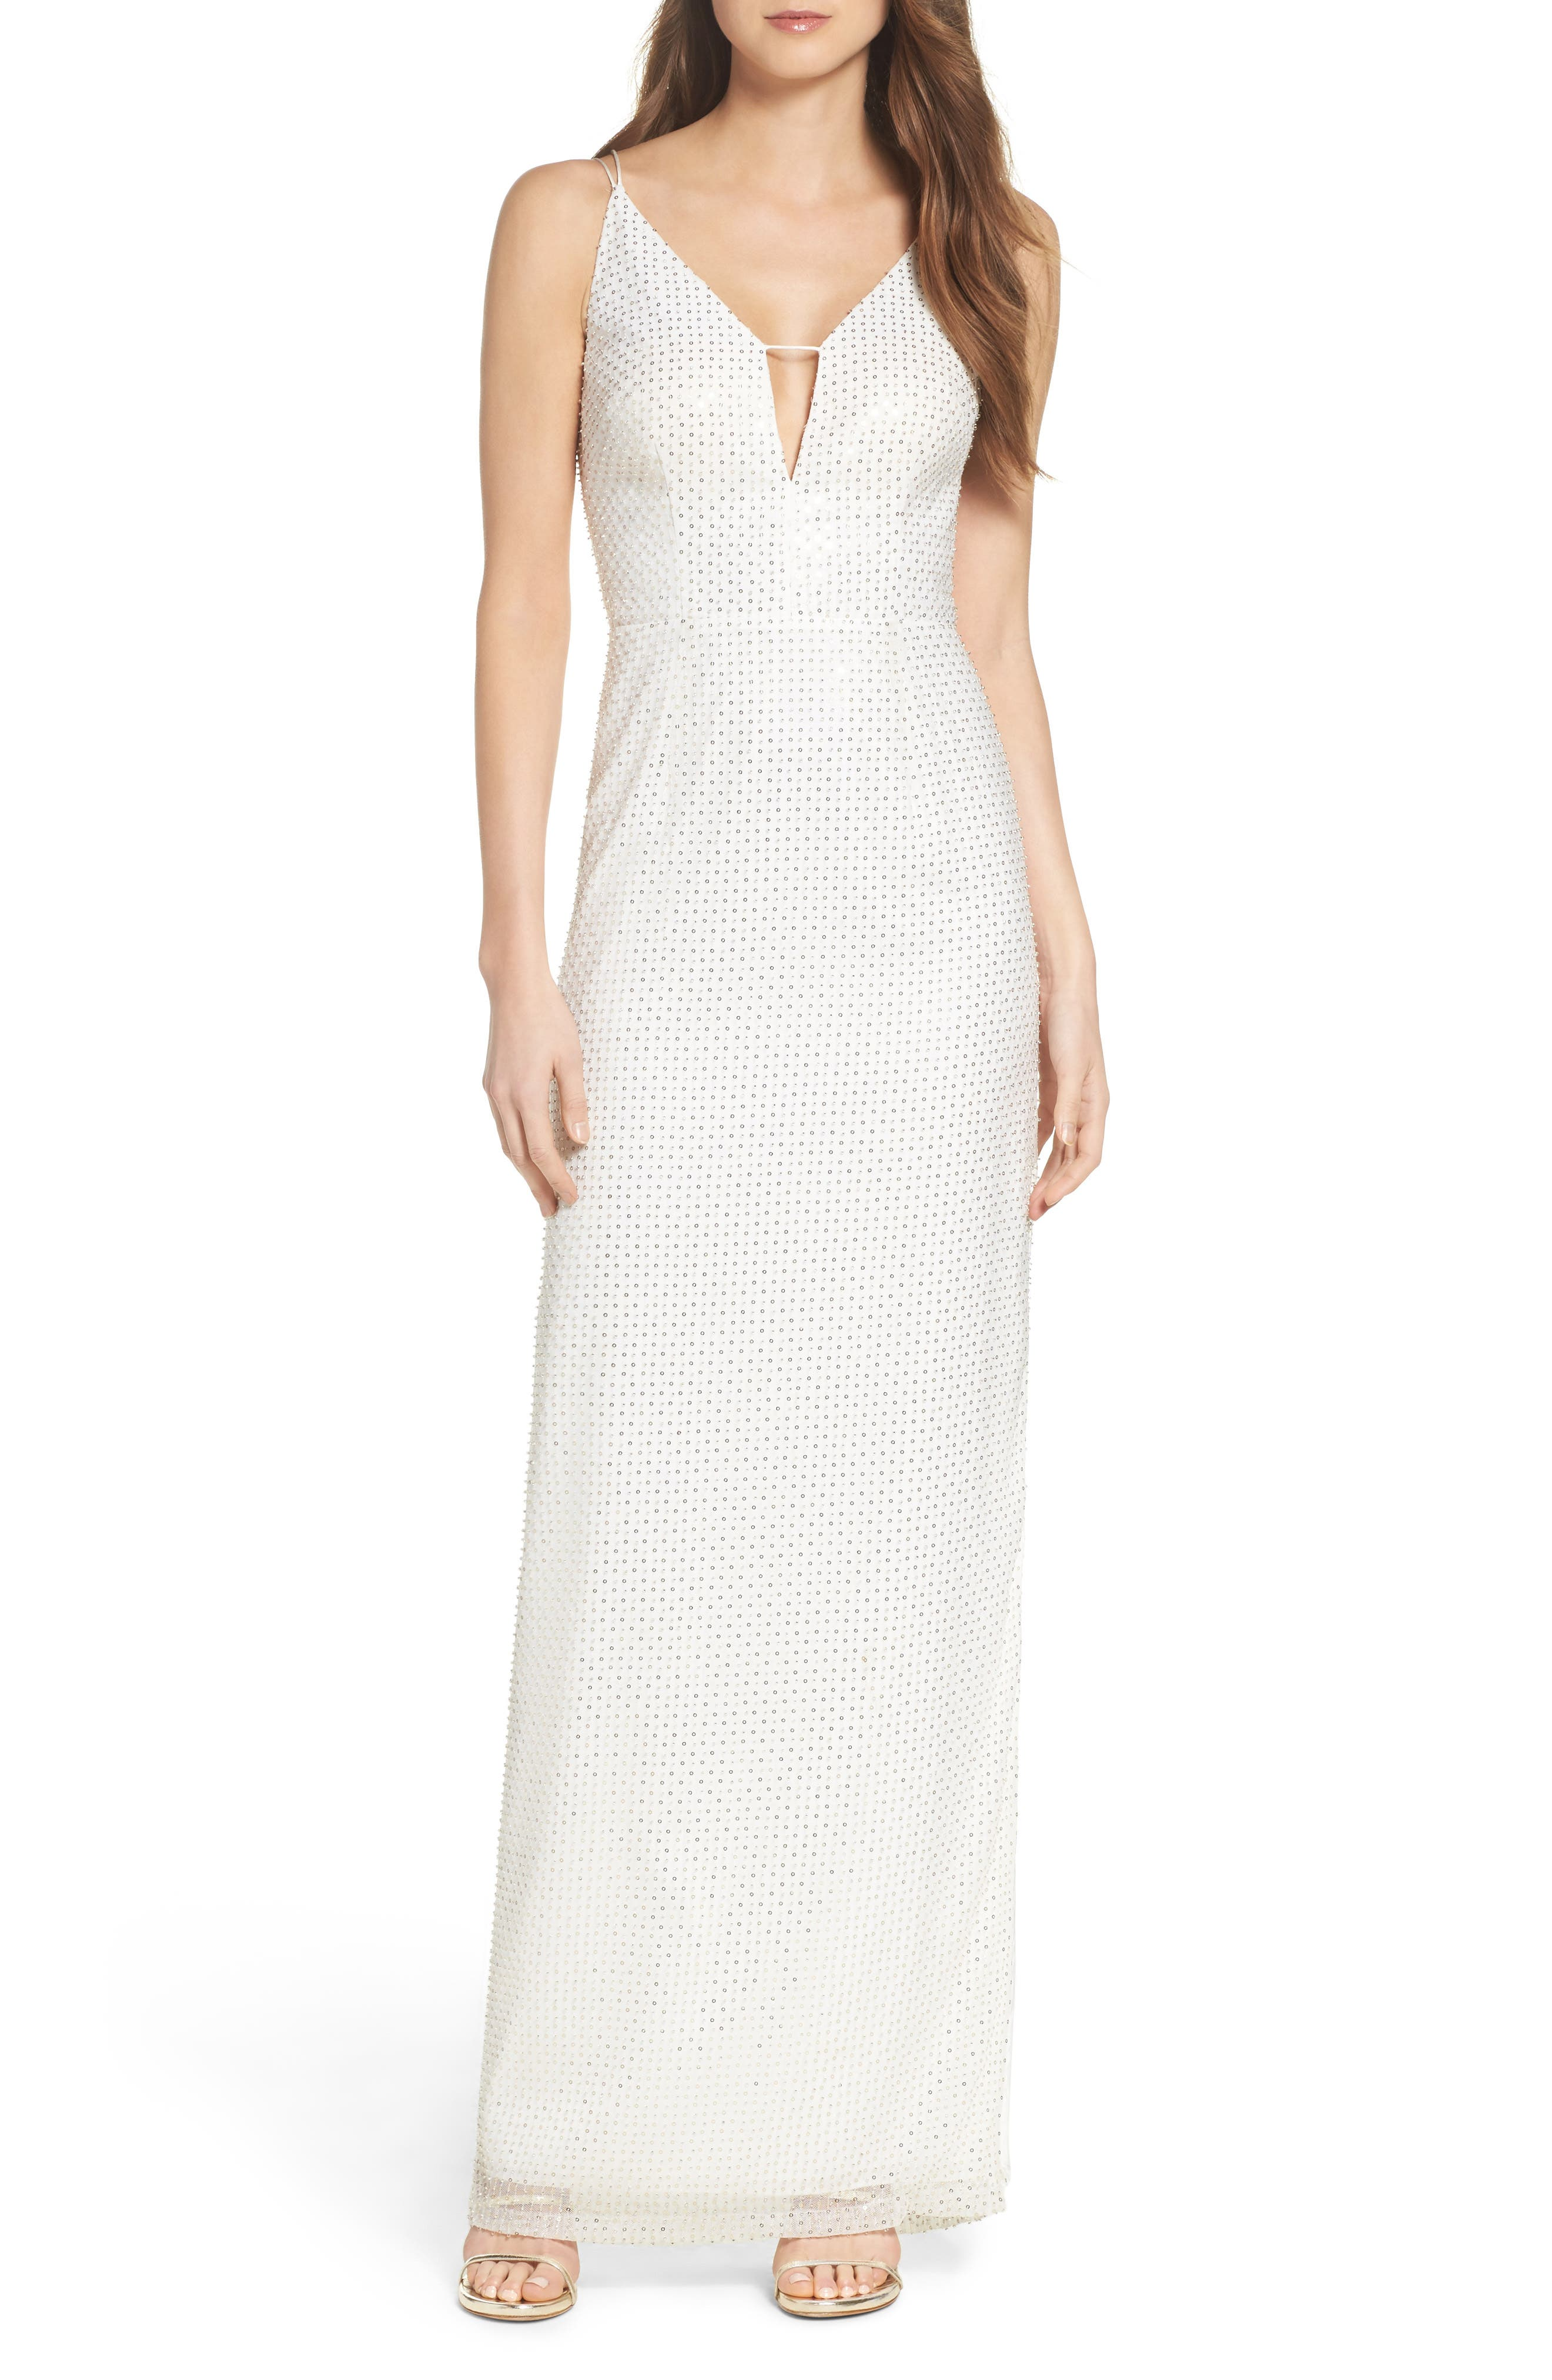 Main Image - Aidan by Aidan Mattox Embellished Column Dress